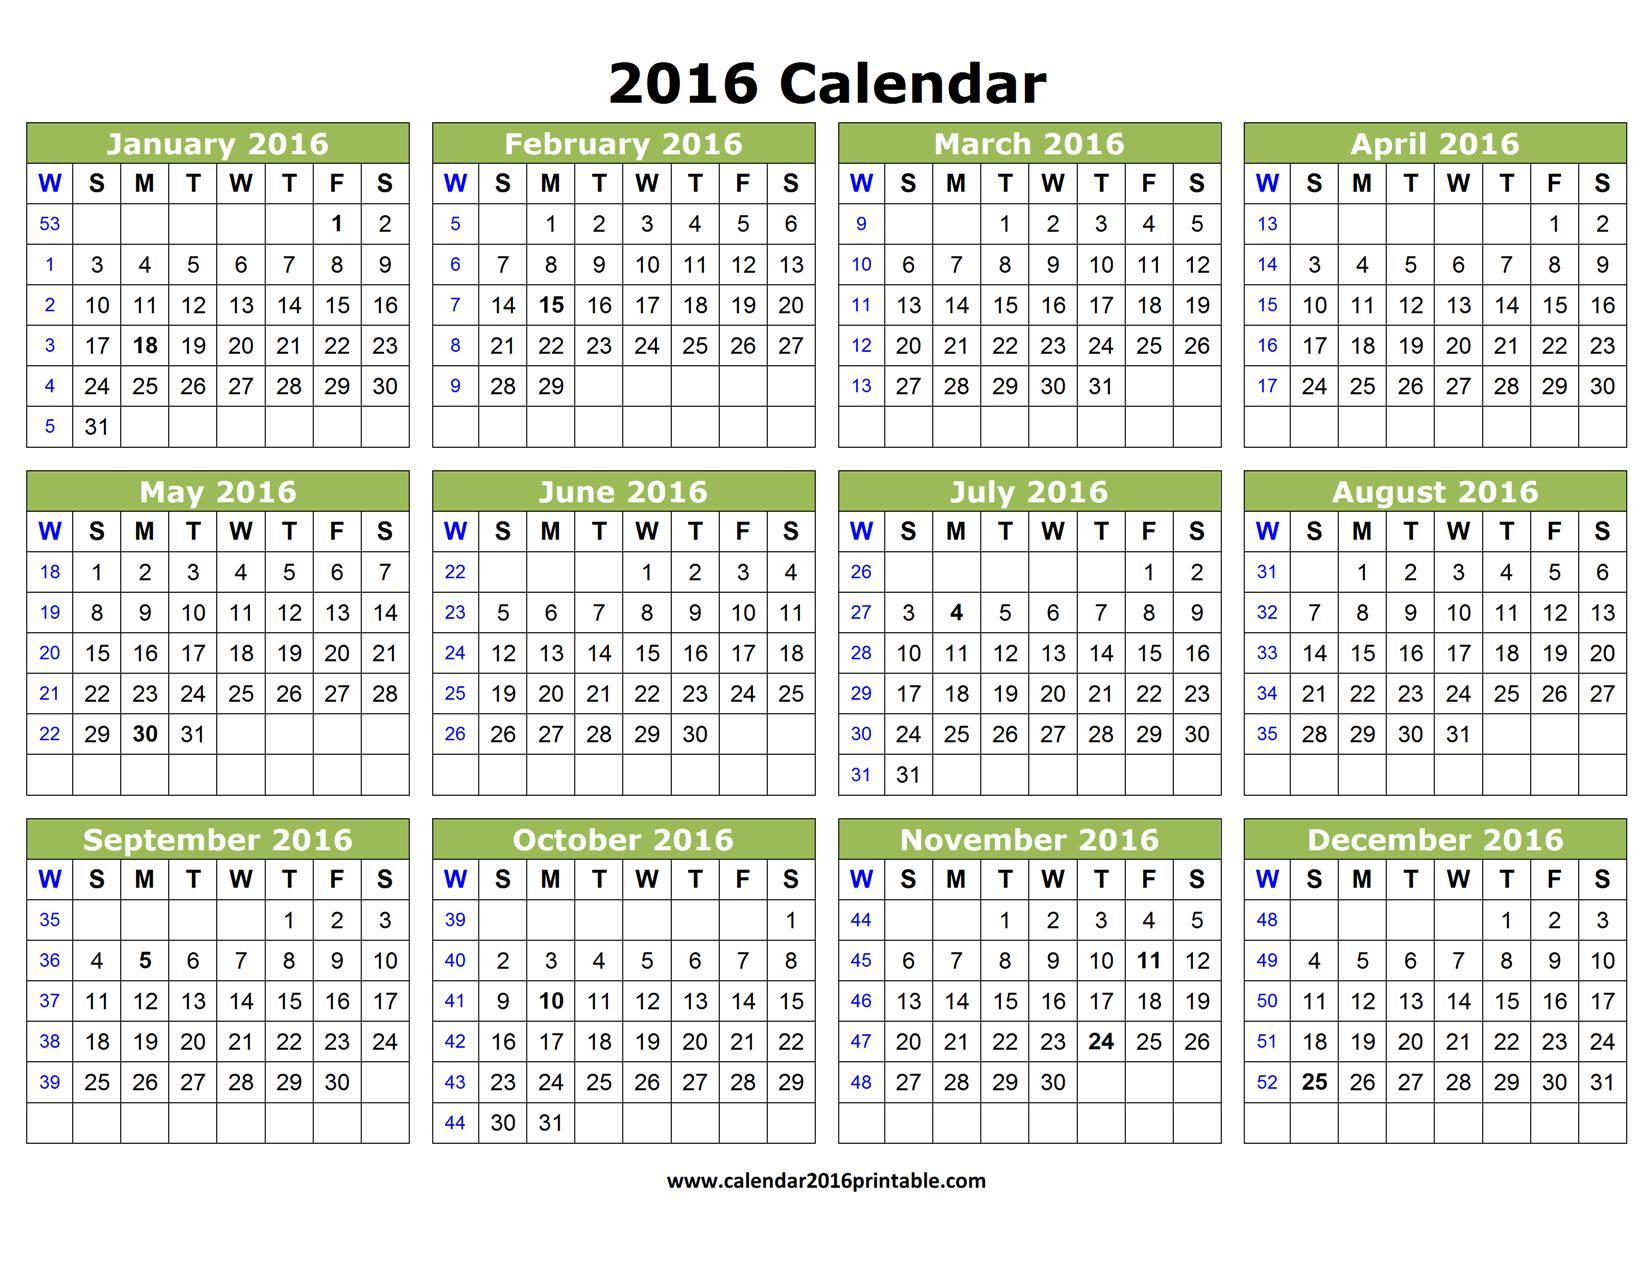 Free 2016 Calendar Template That You Can Download Customize And